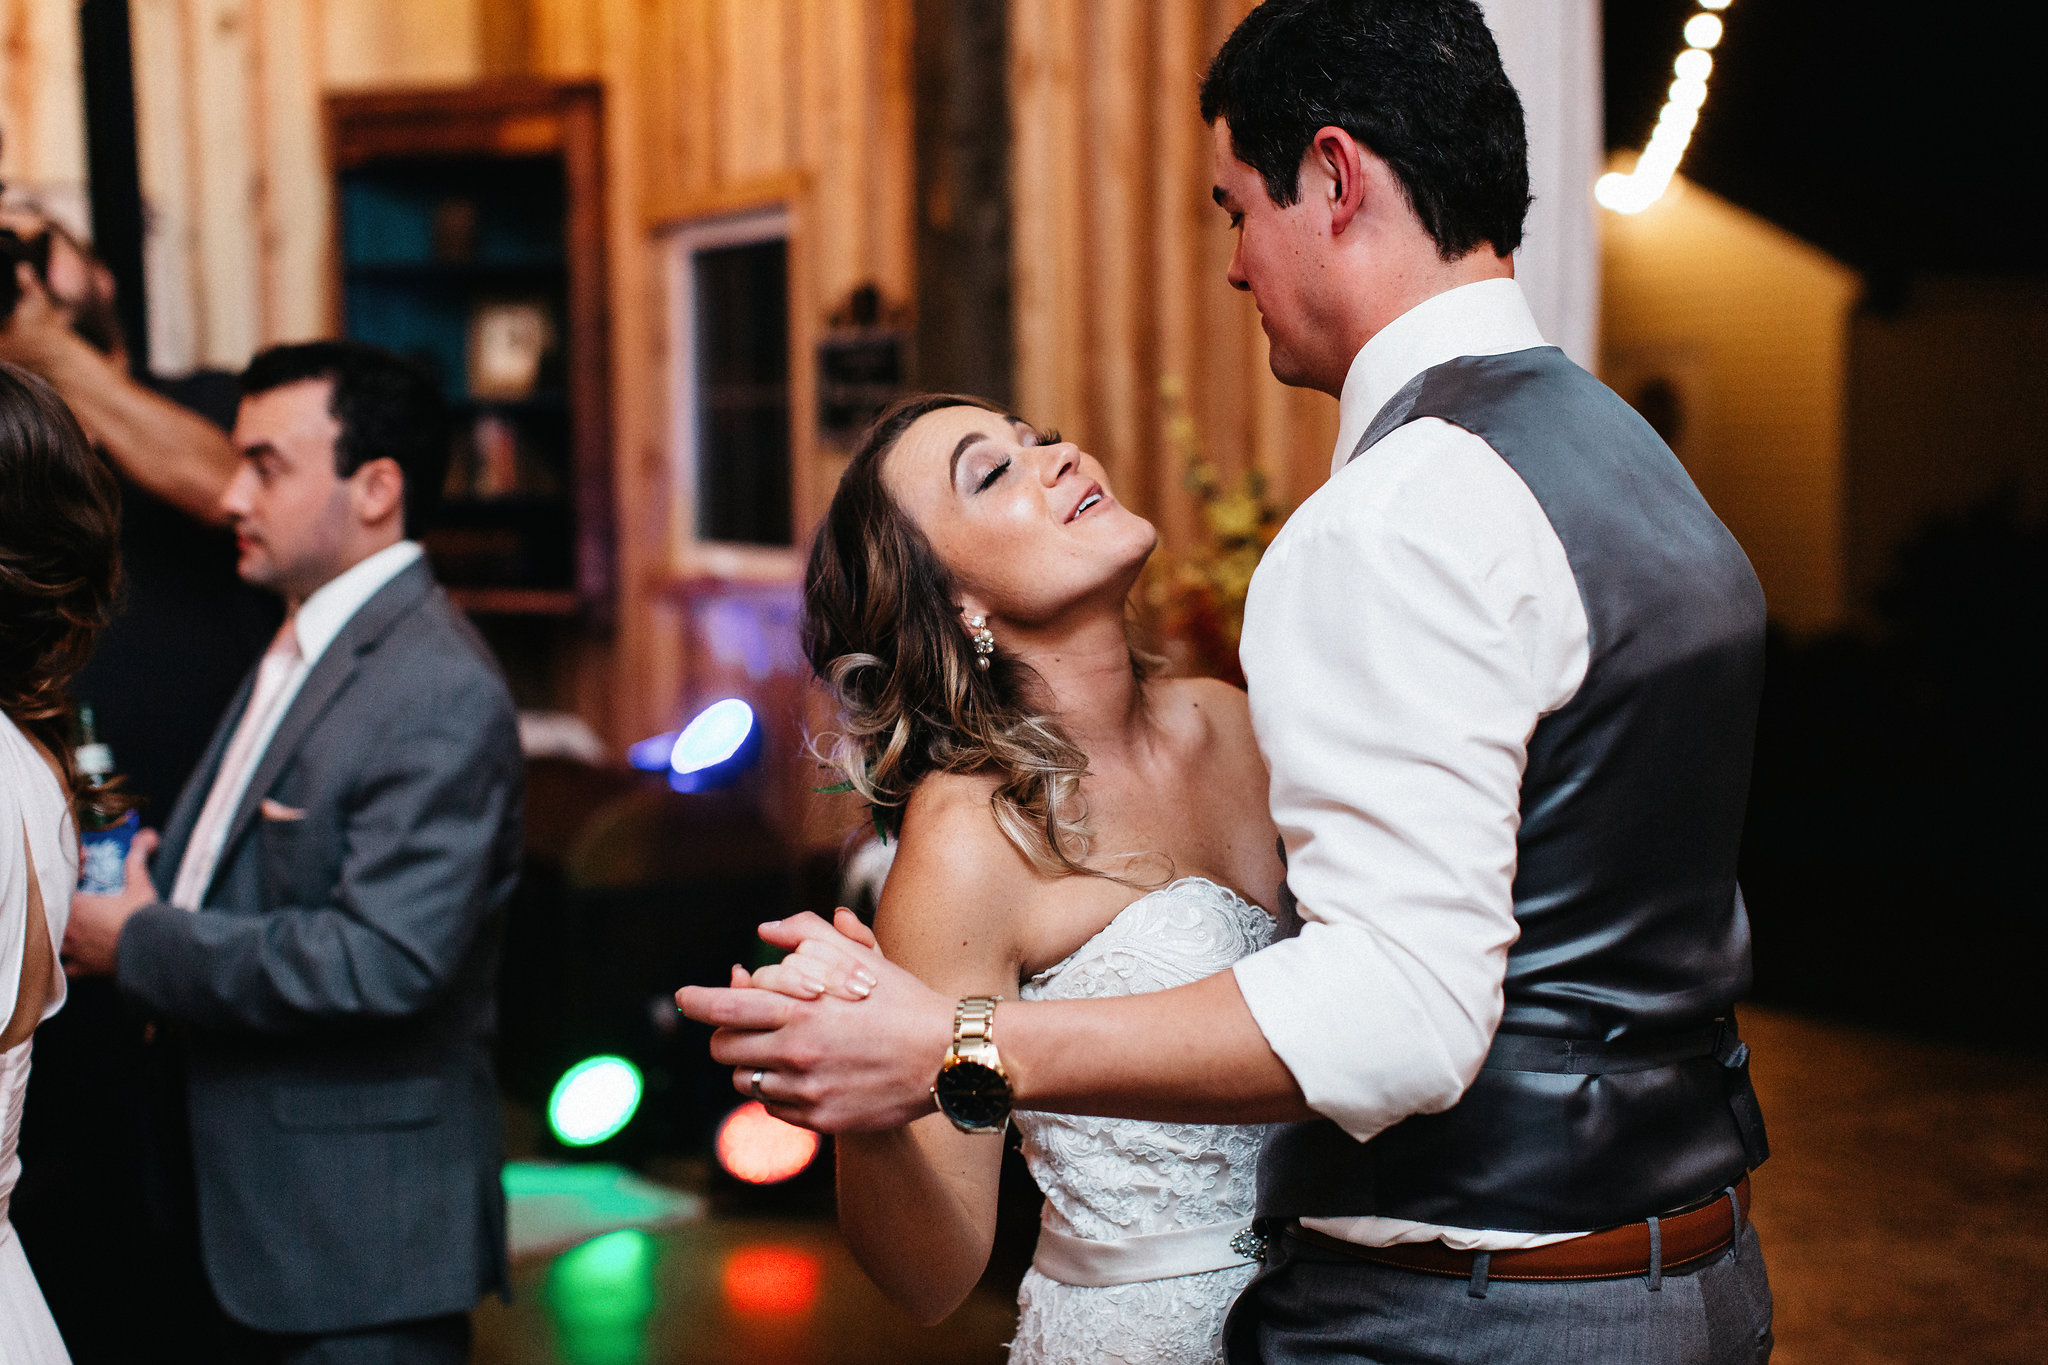 Ashley&NathanMarried2017-11-10at19.26.50PM125.jpg